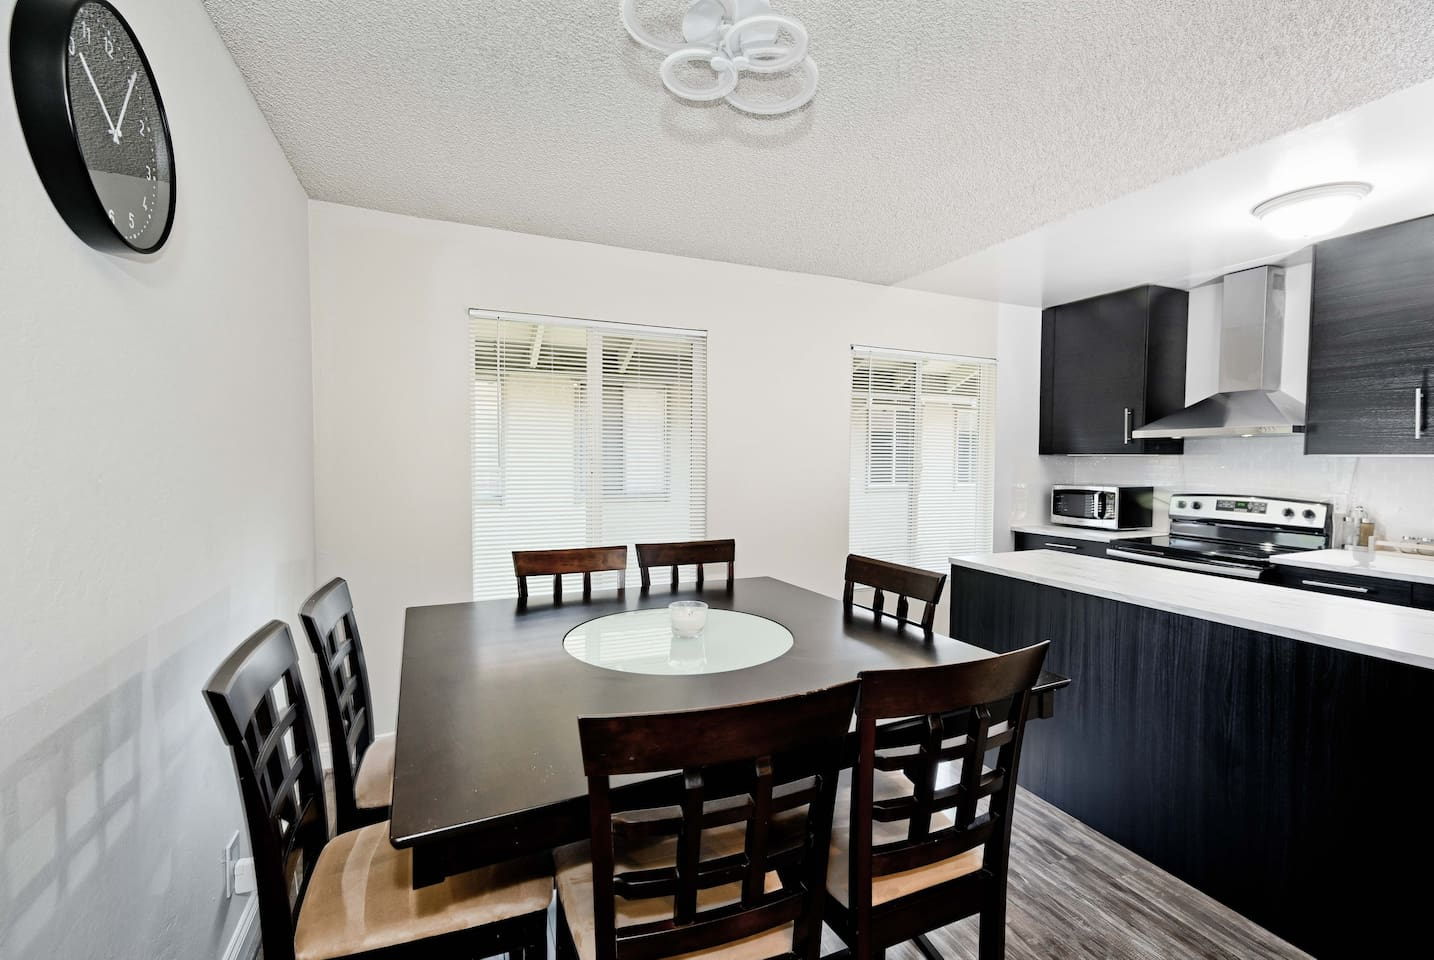 Dining area and kitchen. Dining table is large and can be used to get some work done. Kitchen is fully equipped.